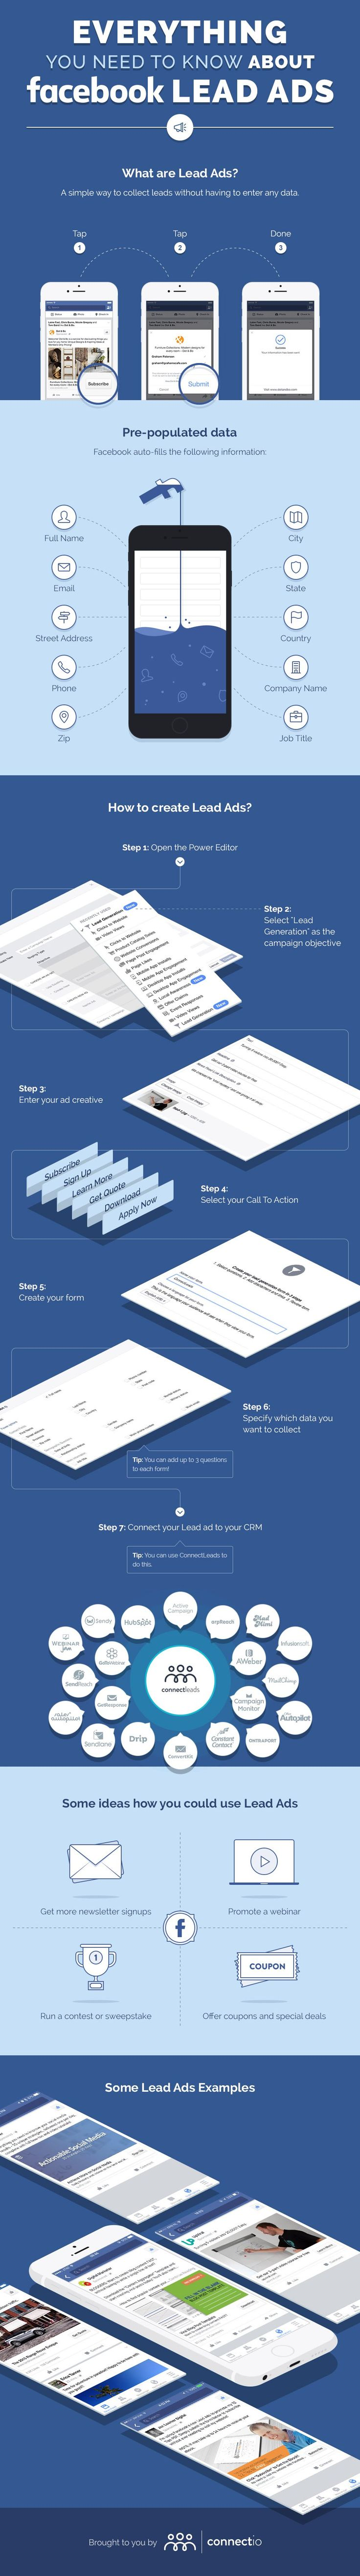 380 best facebook advertising images on pinterest blogging everything you need to know about facebook lead ads infographic social media today malvernweather Images